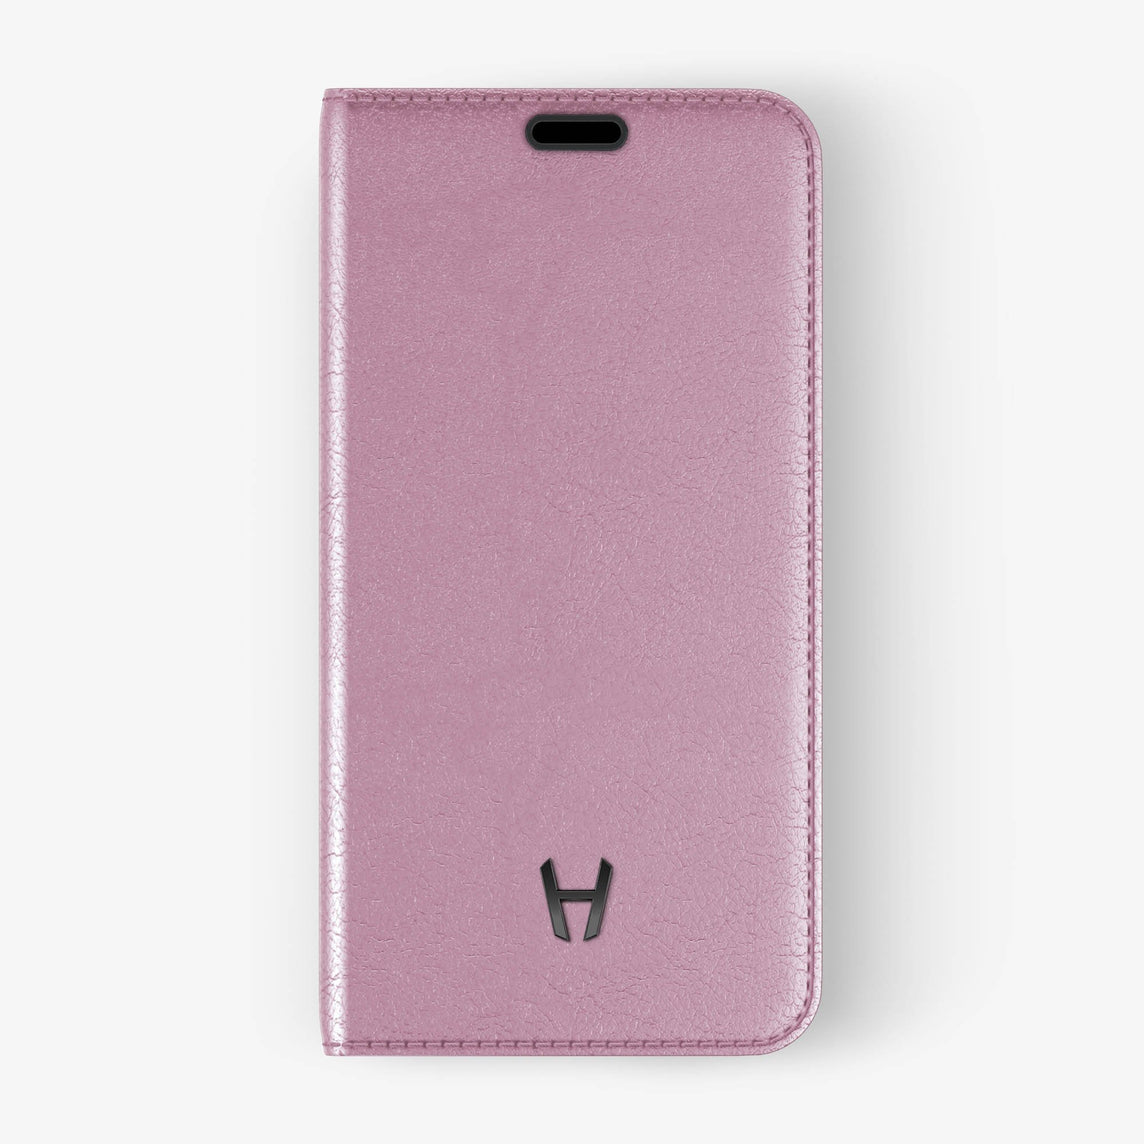 Pink Calfskin iPhone Folio Case for iPhone X finishing black - Hadoro Luxury Cases - img1